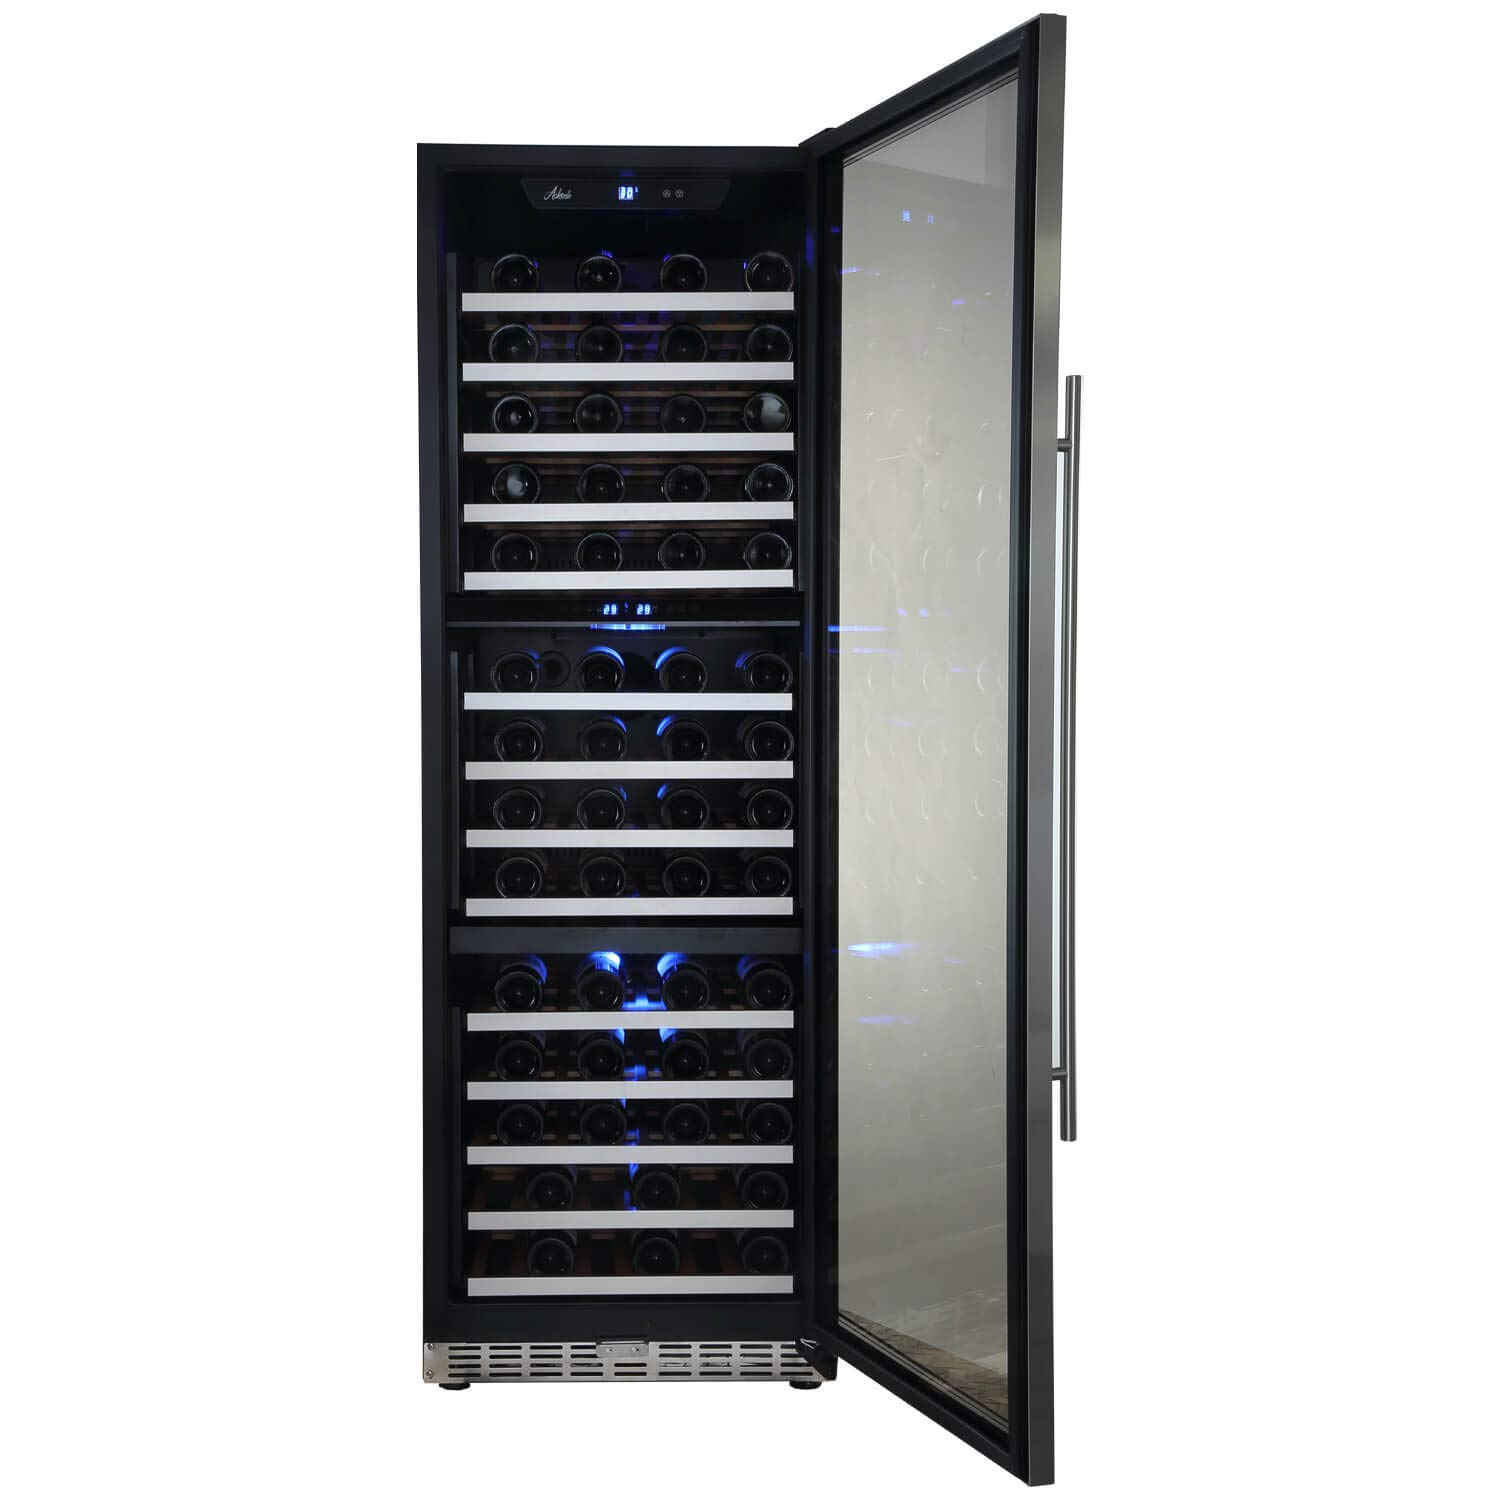 "Aokinle 144 Bottle Wine Cooler-Compressor,24"" Triple Zone Built-in&Freestanding,Steel Door&Double-Layer Tempered Glass Door Refrigerator,Temperature Memory Function&Touch Control"